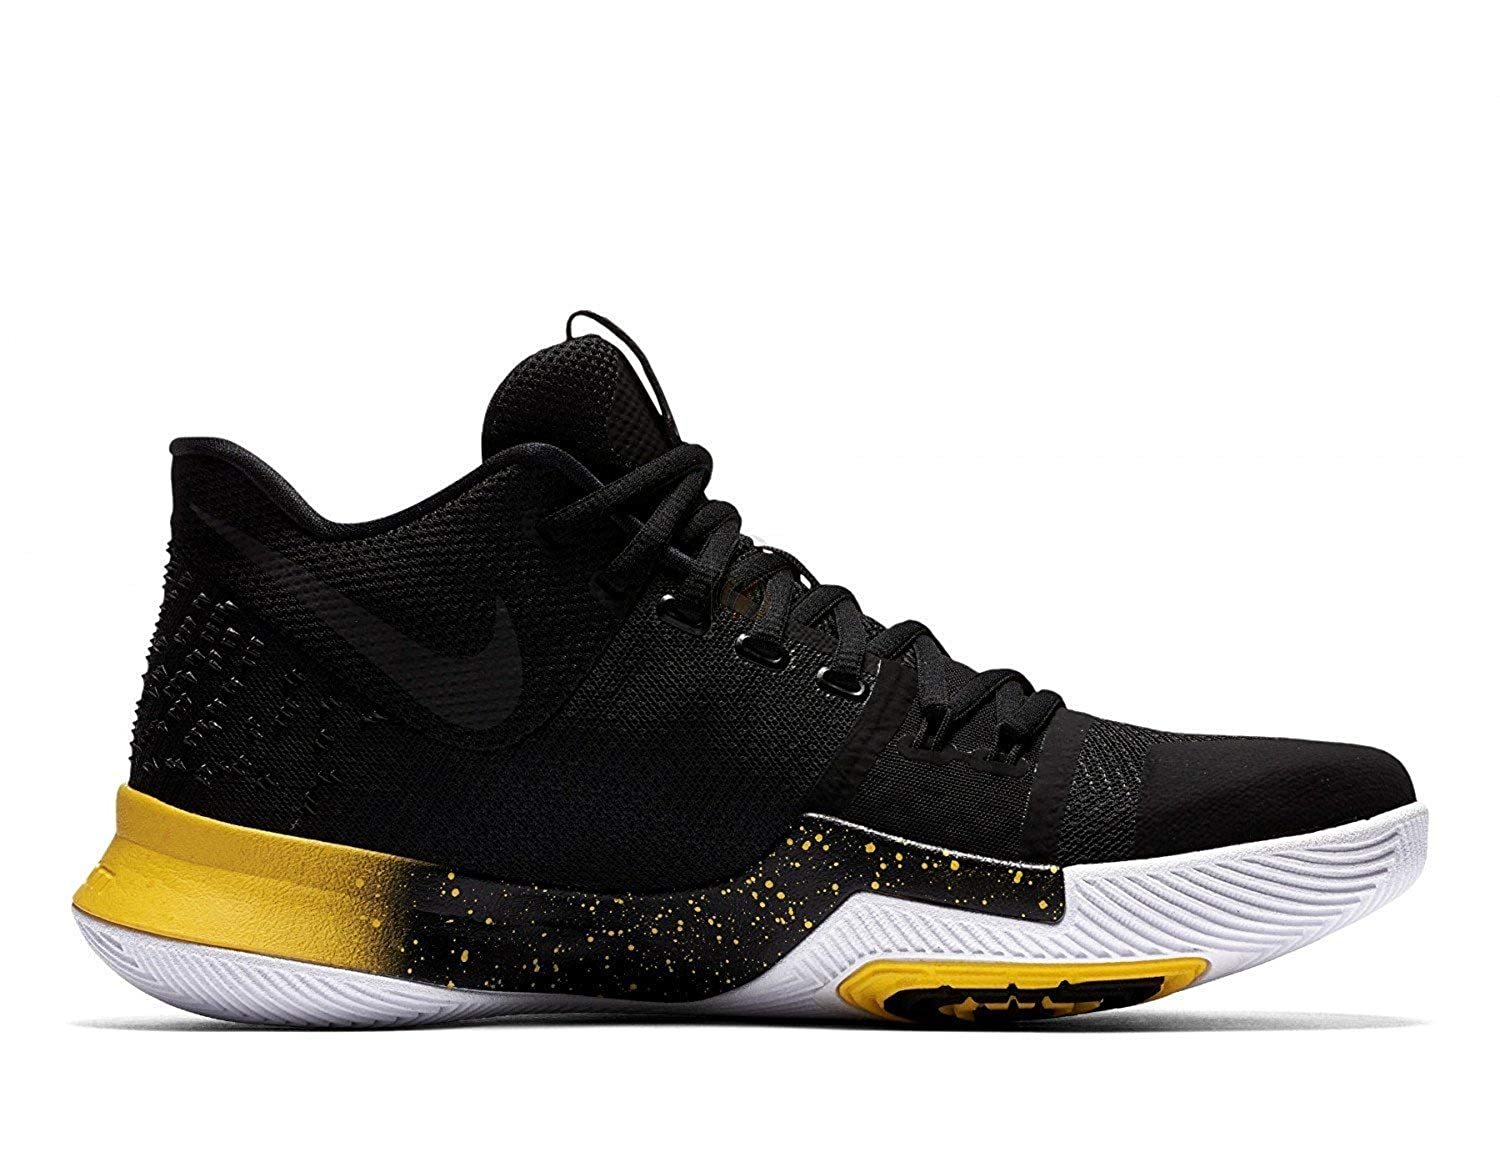 timeless design 49d35 348c5 NIKE Mens Kyrie 3 Basketball Sneakers New, Black Yellow 852395-901